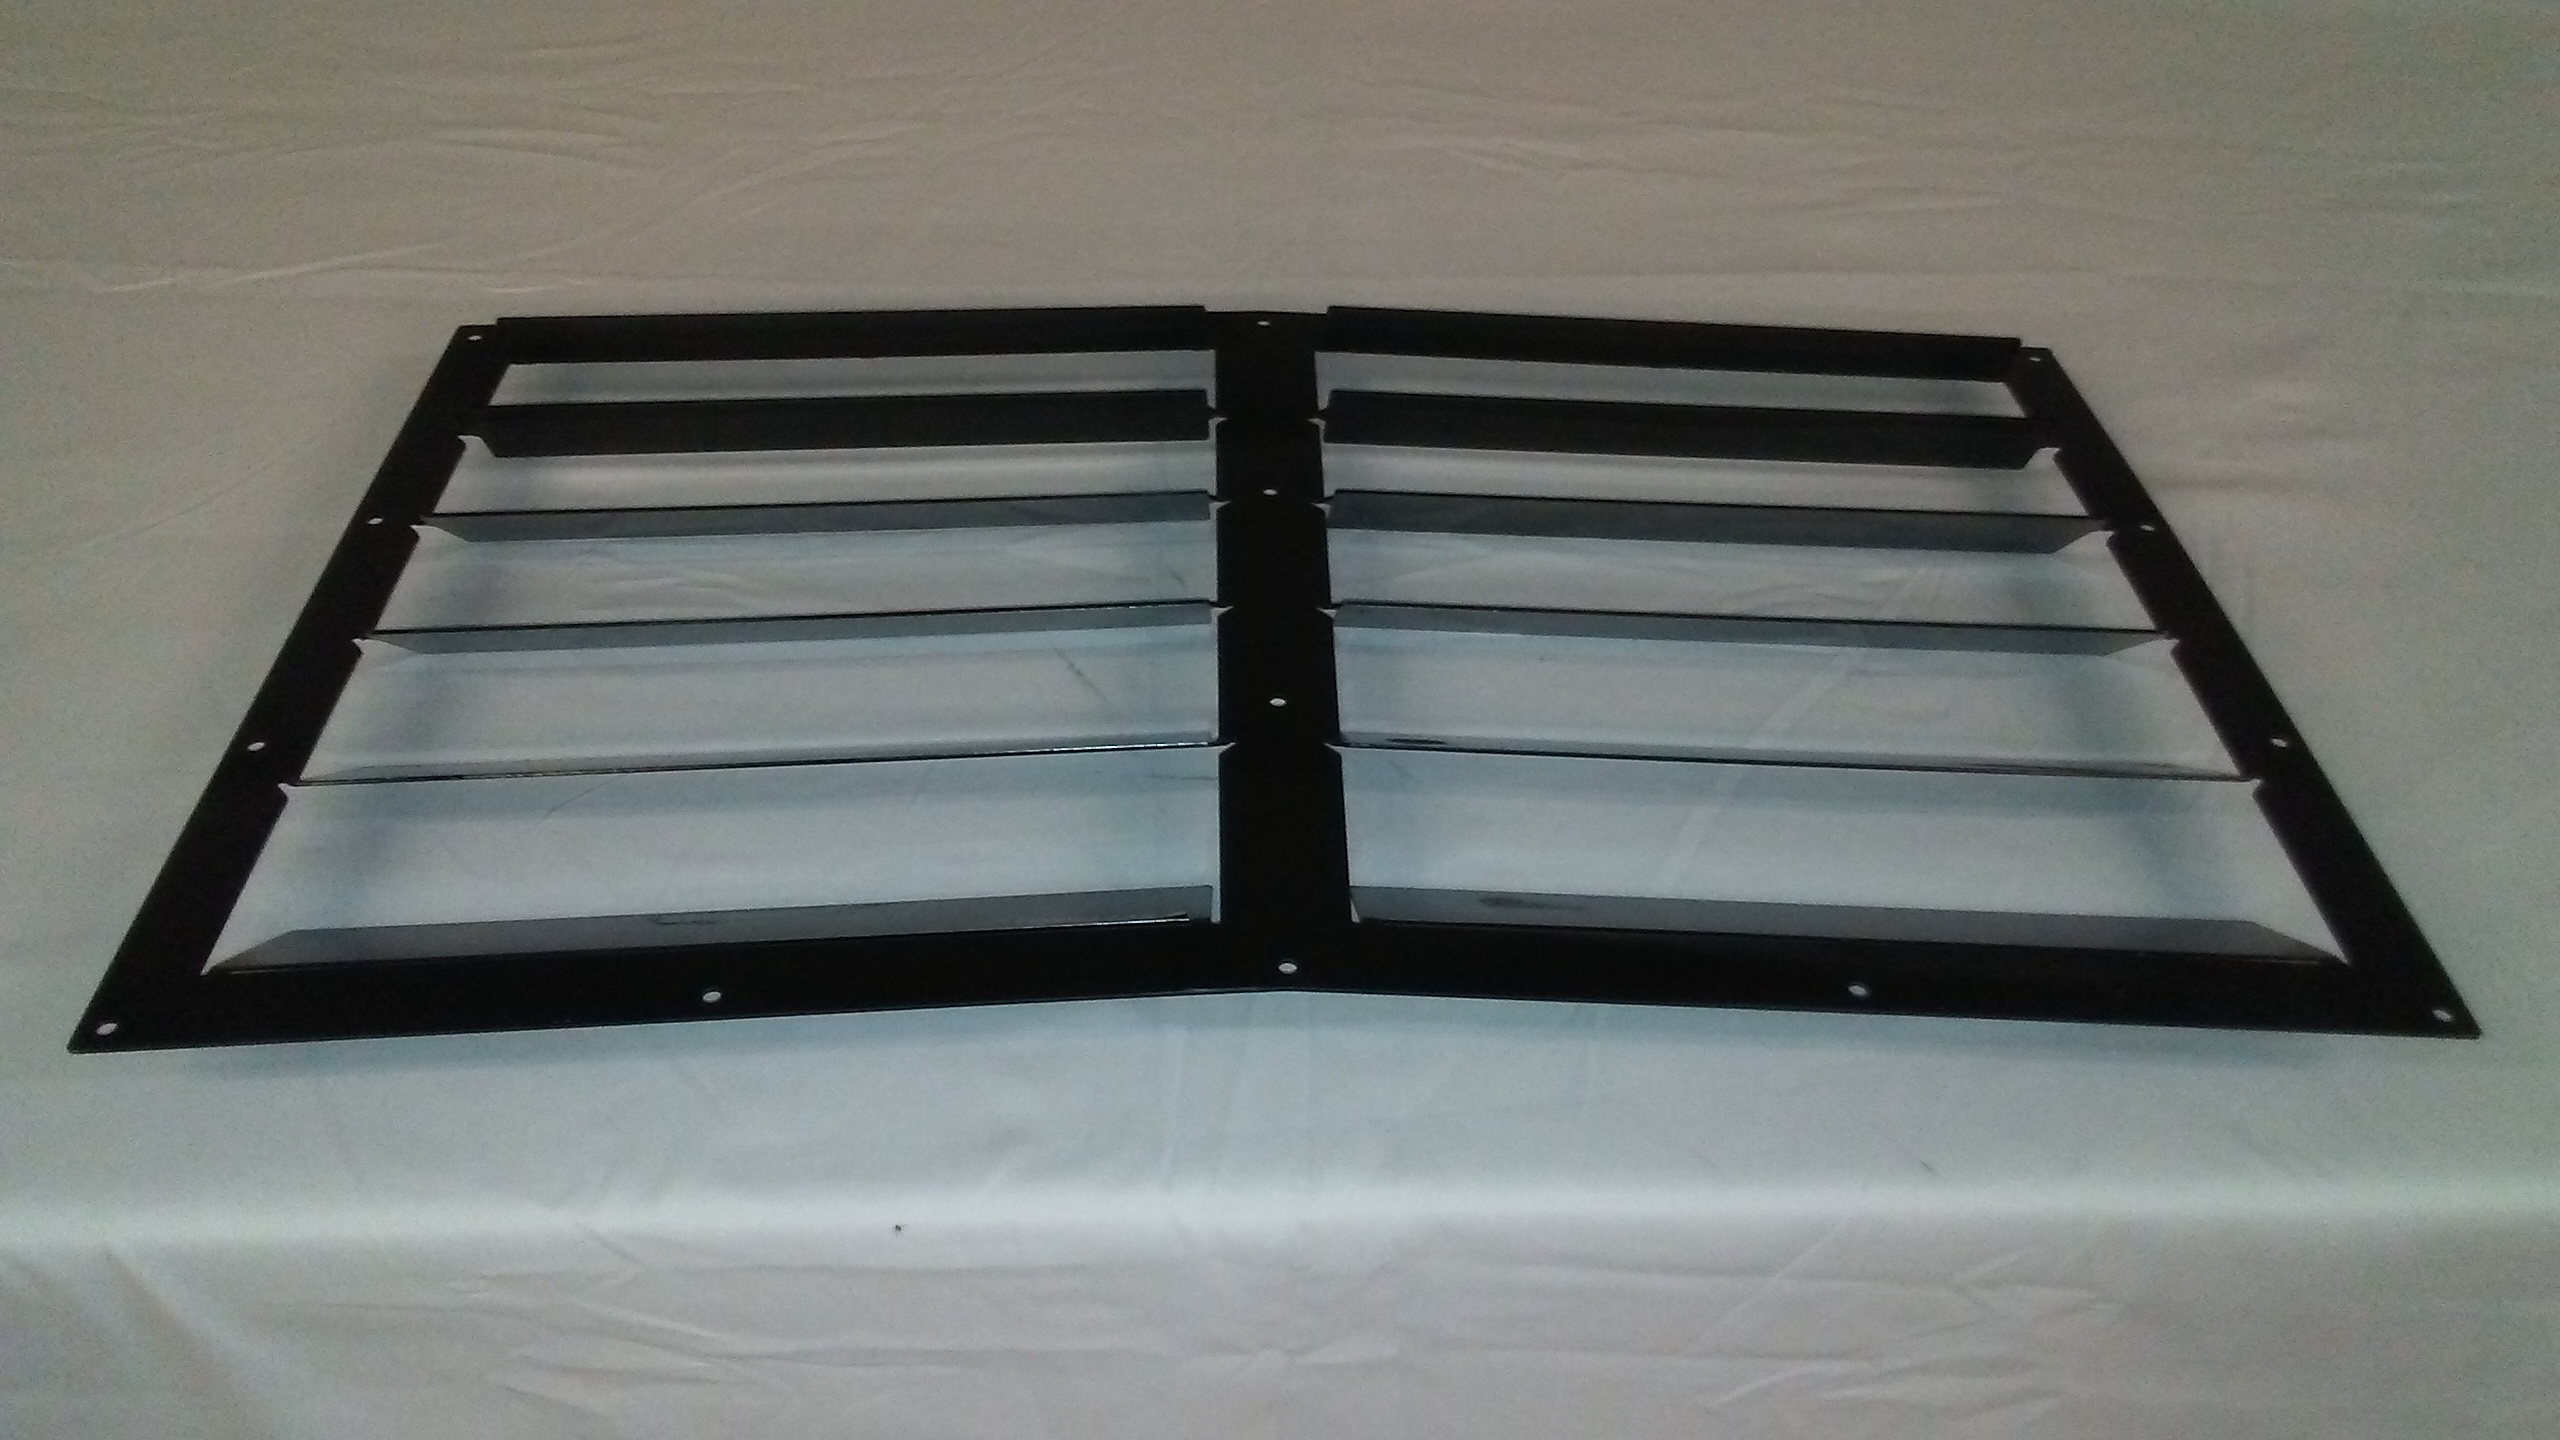 race-louvers-rear-view-rx-trim-hood-extractor.jpg